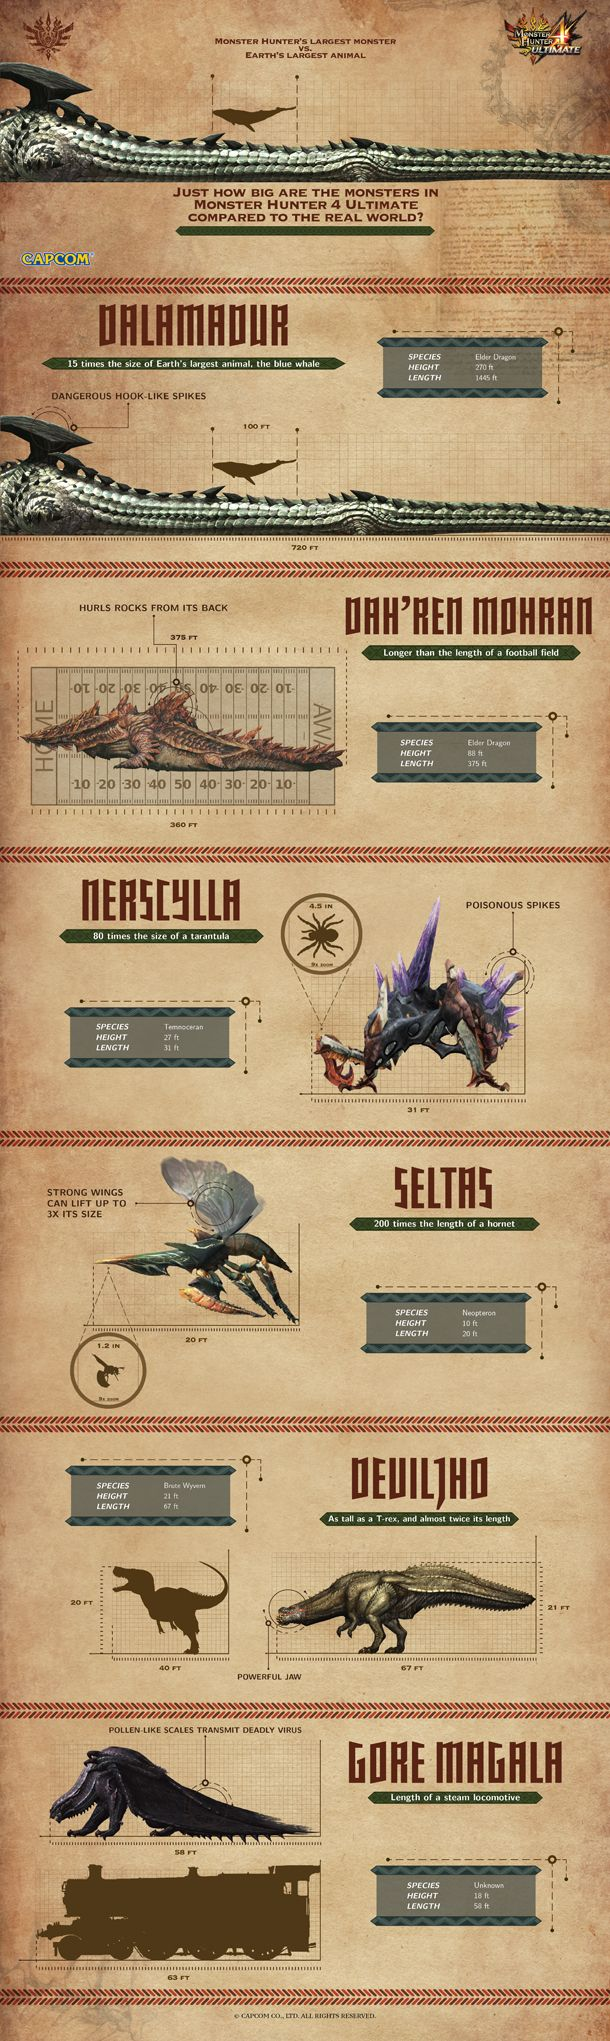 Get A Sense Of Monster Hunter Monster Scale With Collection Of Infographics - Monster Hunter 4 Ultimate - 3DS - www.GameInformer.com